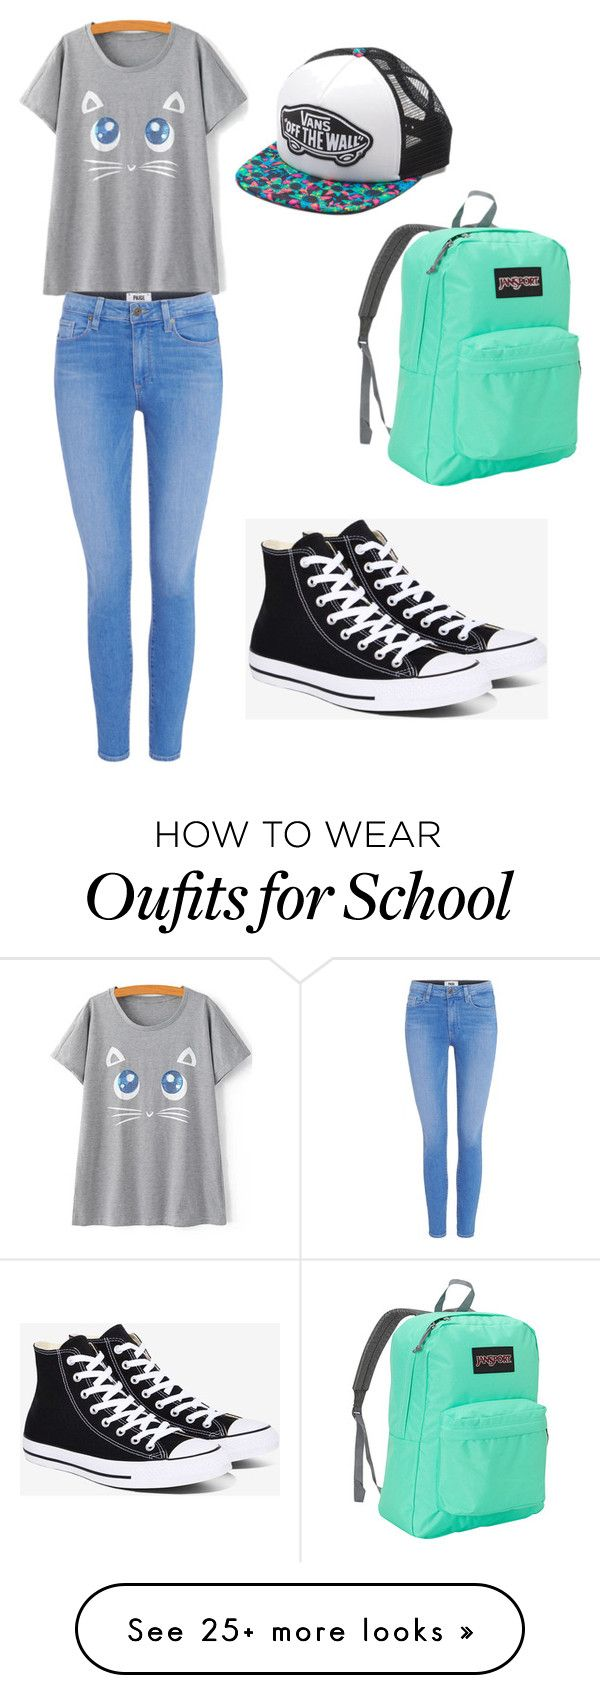 """""""School"""" by catbasil on Polyvore featuring Paige Denim, Converse, Vans and JanSport"""